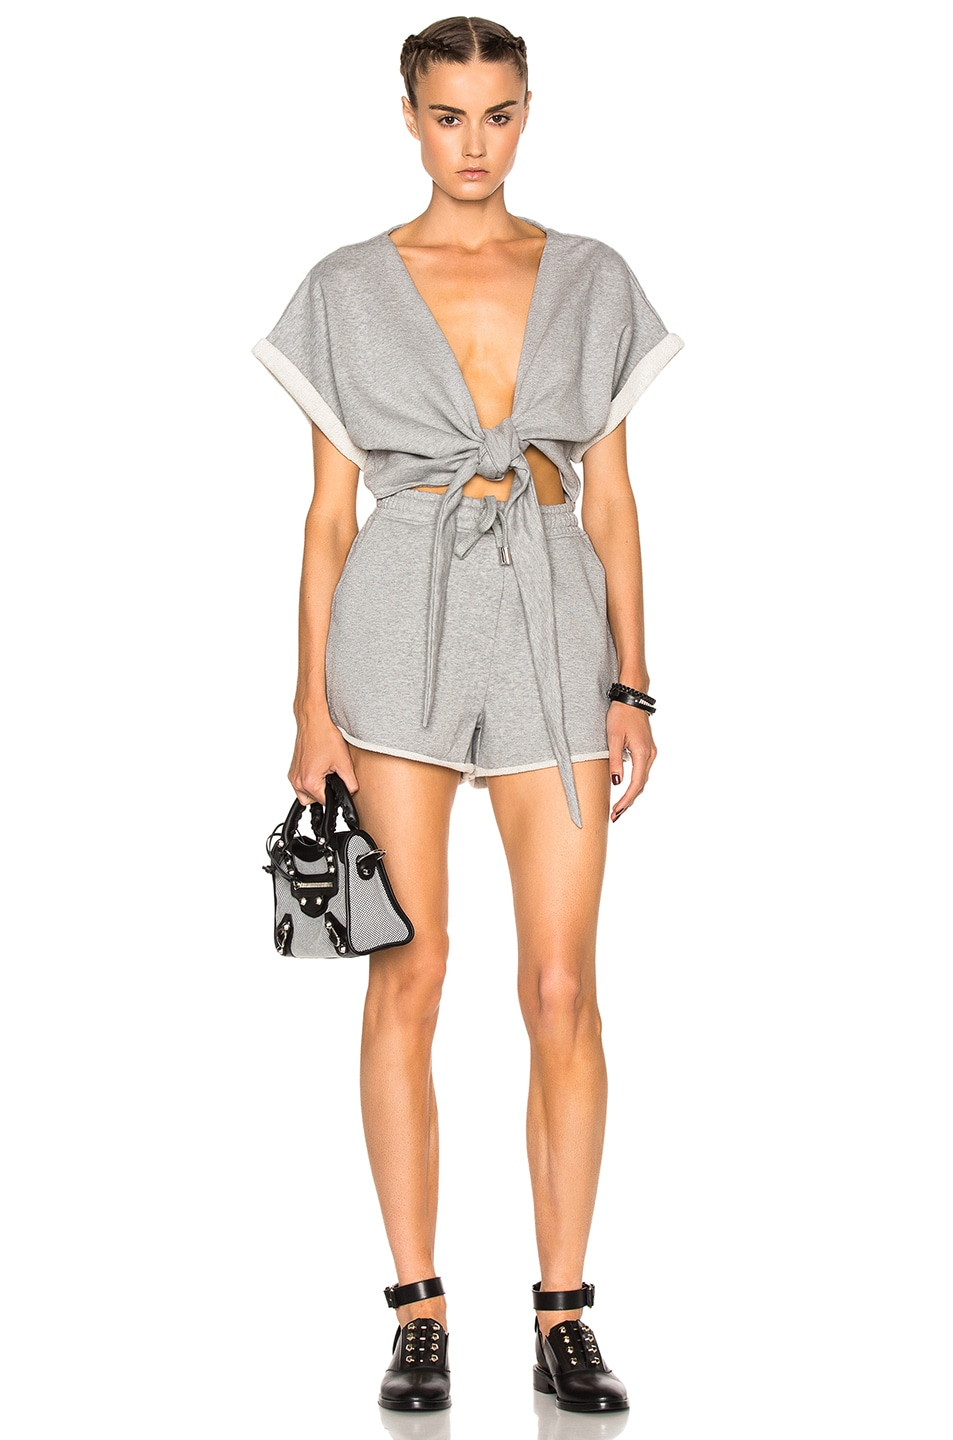 e5661d9d33ce Image 1 of T by Alexander Wang Short Sleeve Tie Romper in Heather Grey